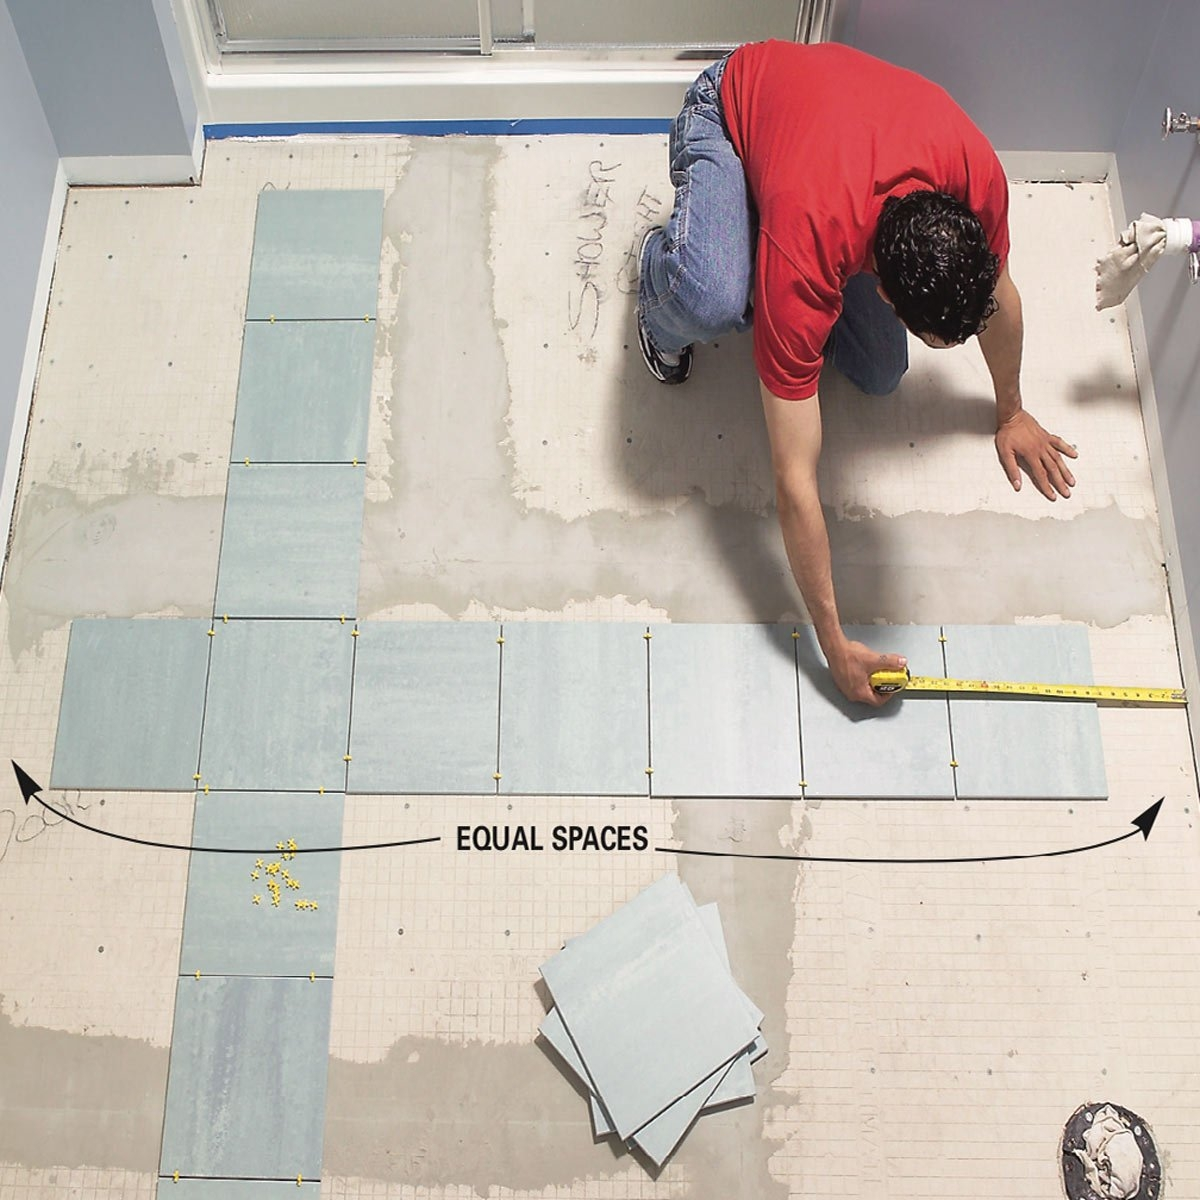 7 Photos Should You Tile A Bathroom Floor Or Wall First ...